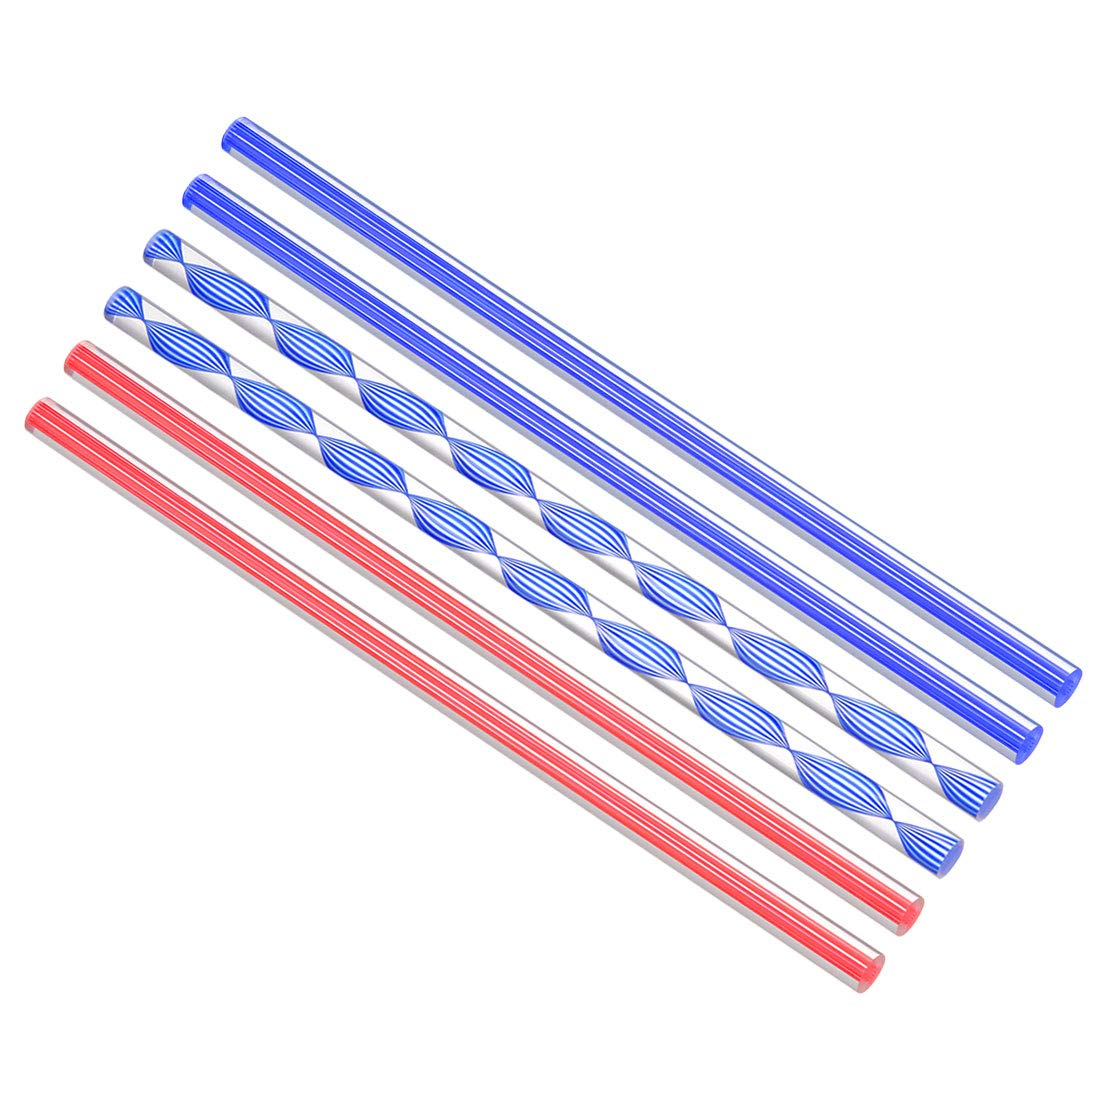 uxcell Acrylic Round Rod,3//8 inch Dia 10 inch Length,Transparent Clear Plastic Round Rod,Solid PMMA Bar